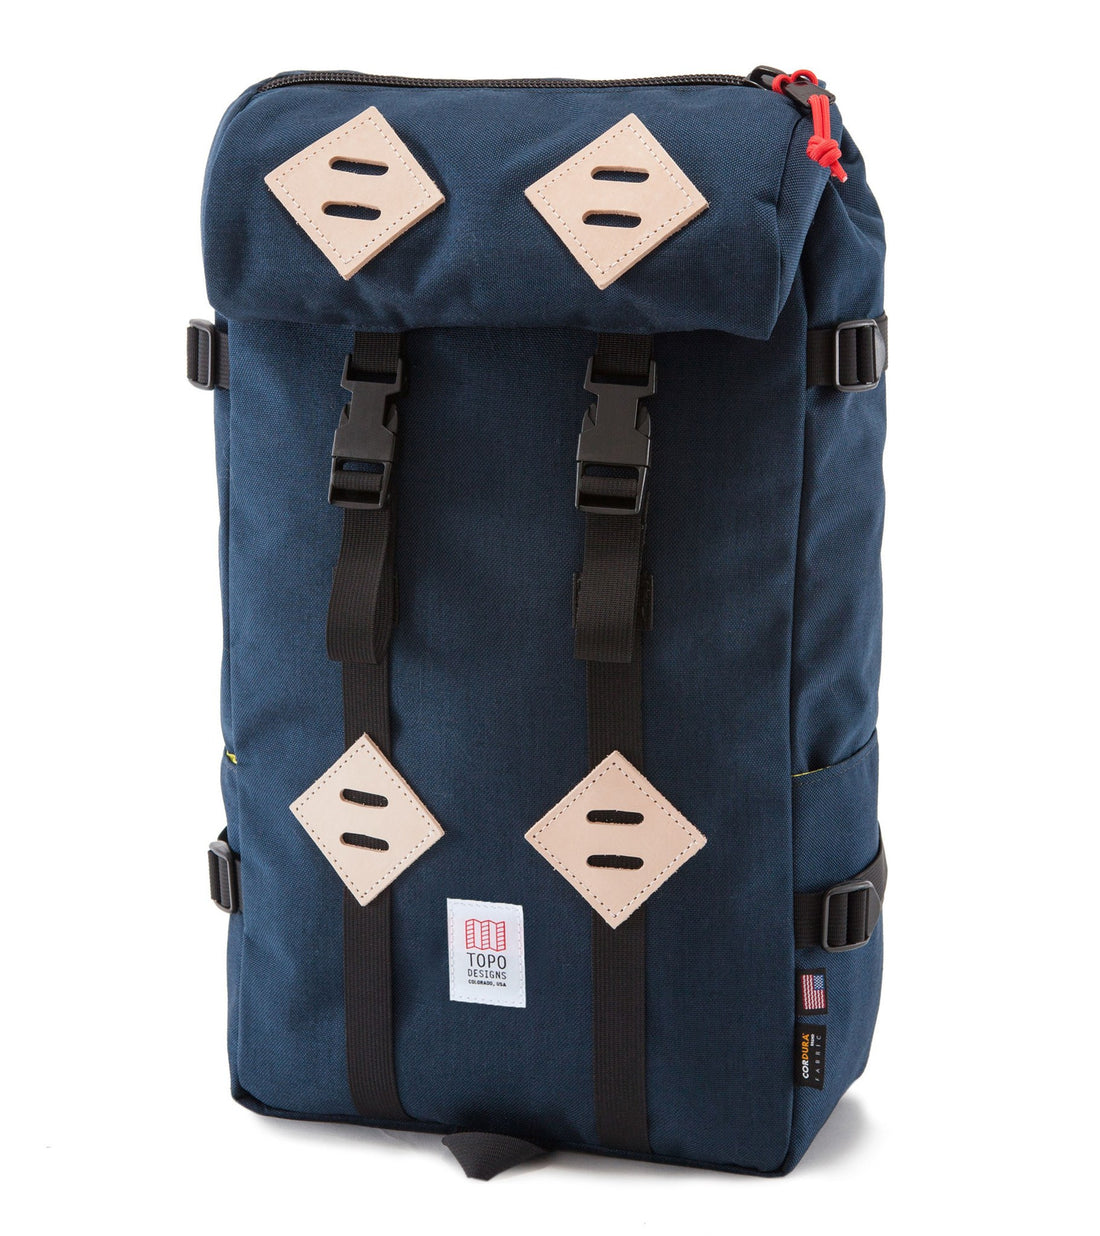 Topo Designs 22L Klettersack - Accessories: Bags - Iron and Resin